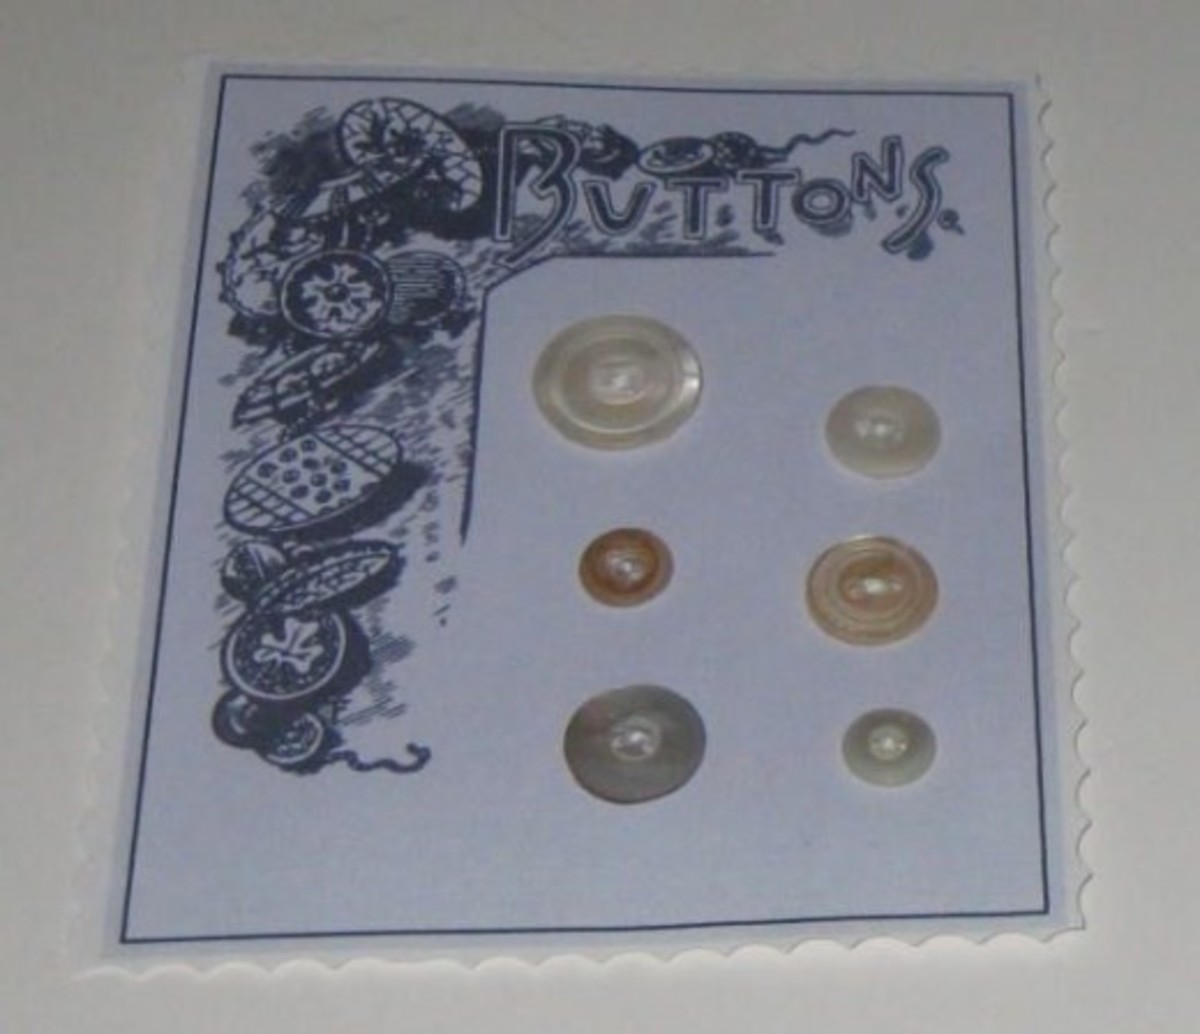 Display buttons on a decorative card.